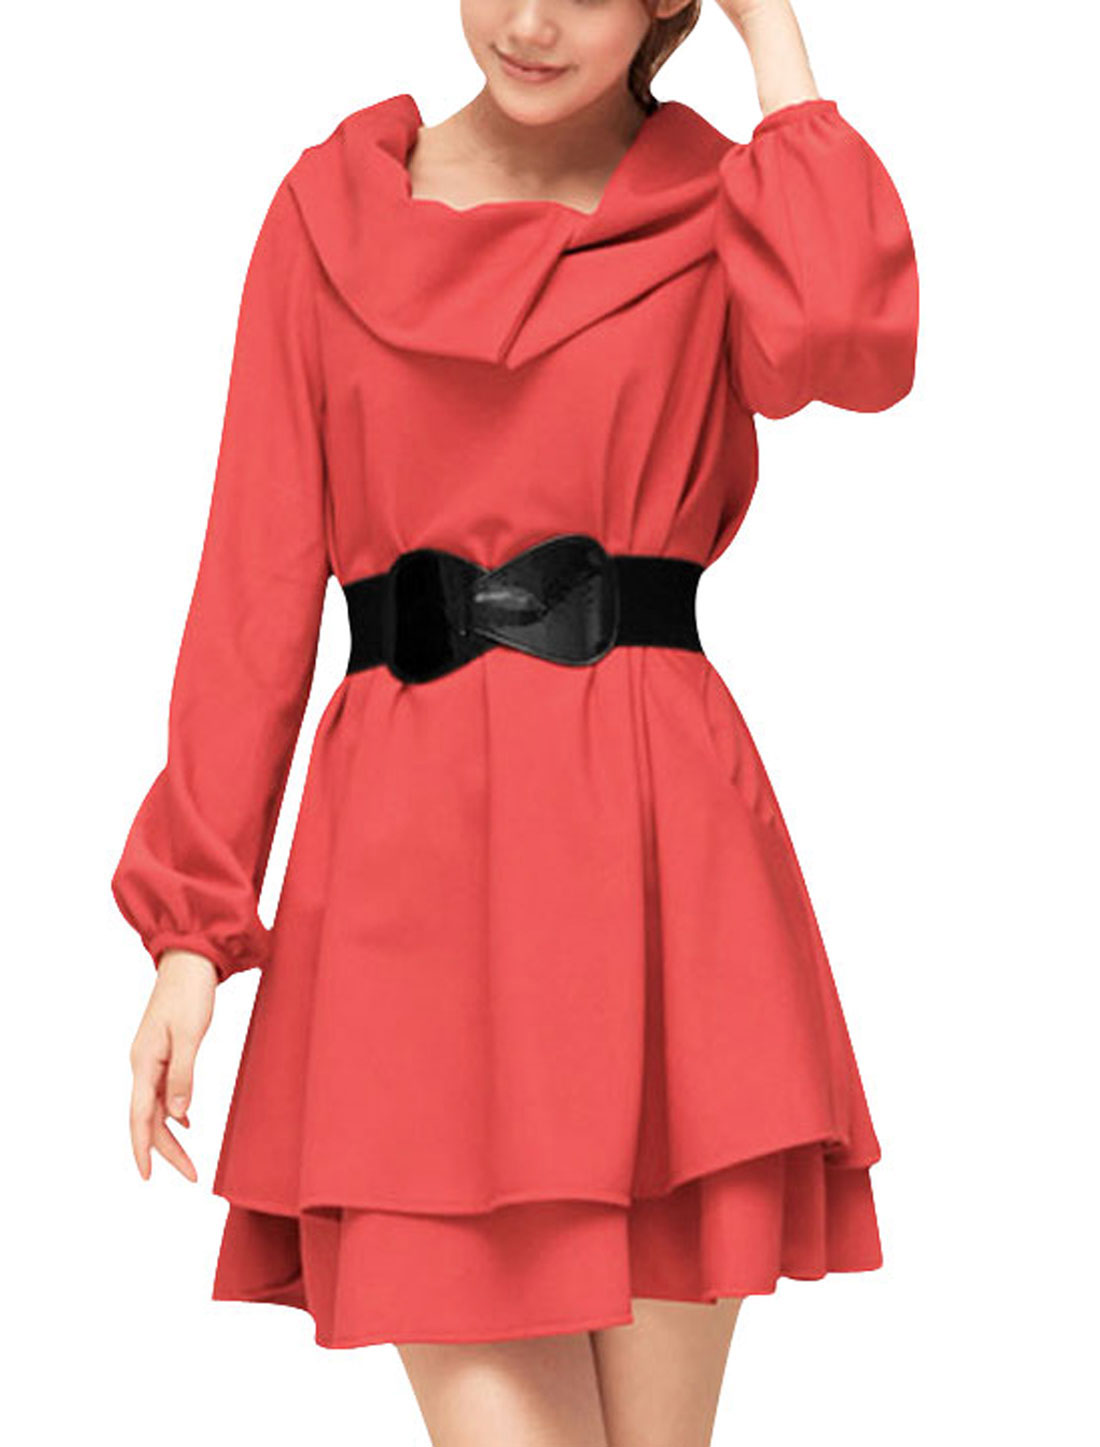 Ladies Watermelon Red Long Sleeves Lined Stylish Above Knee Dress S